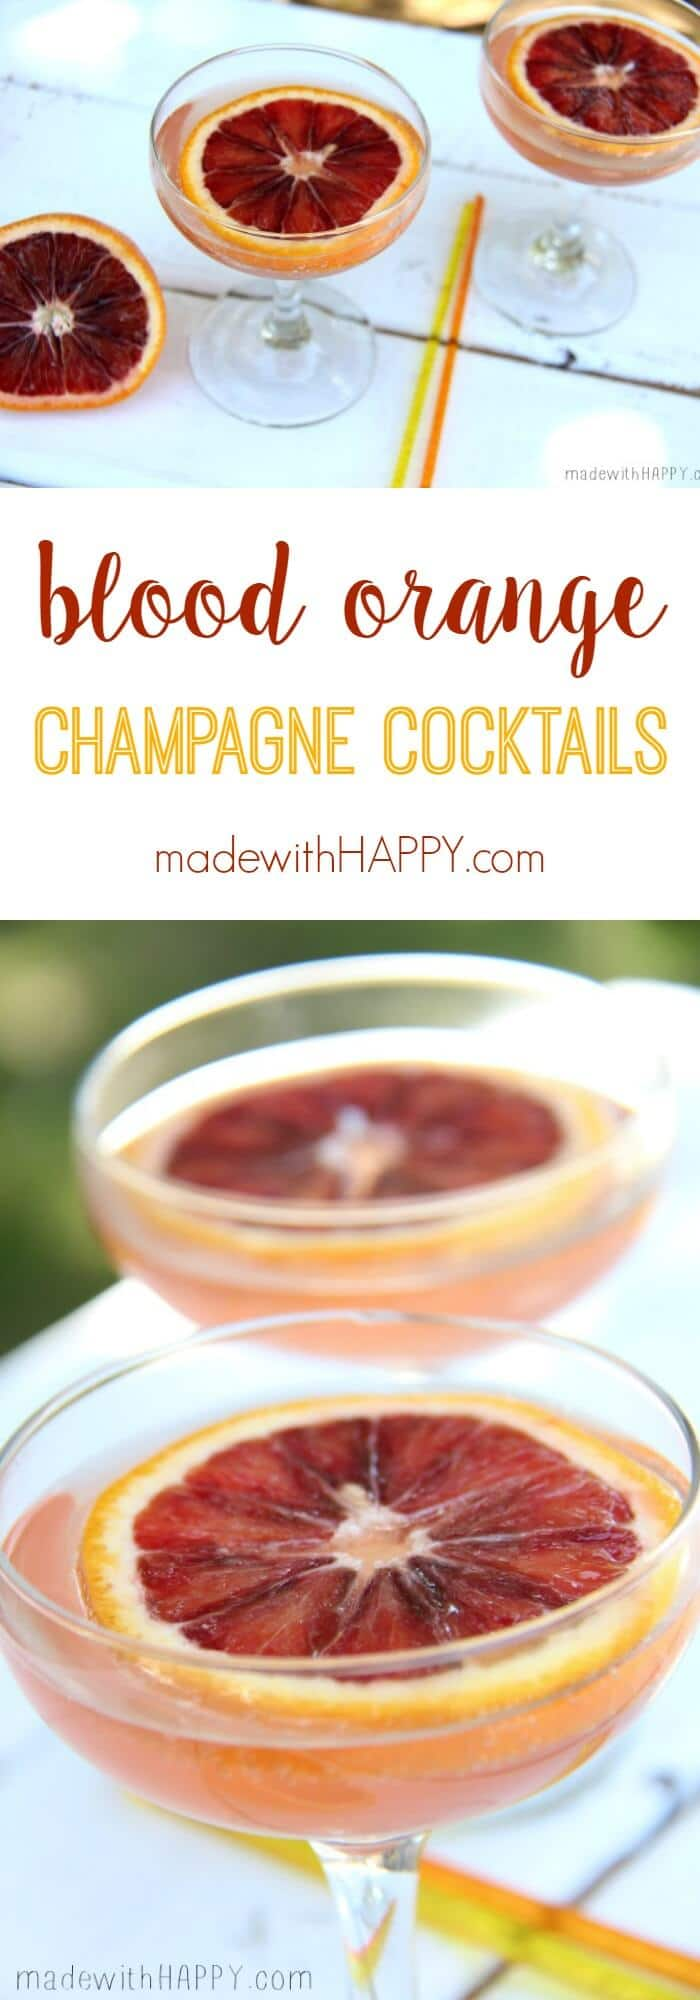 champagne-cocktail-blood-orange